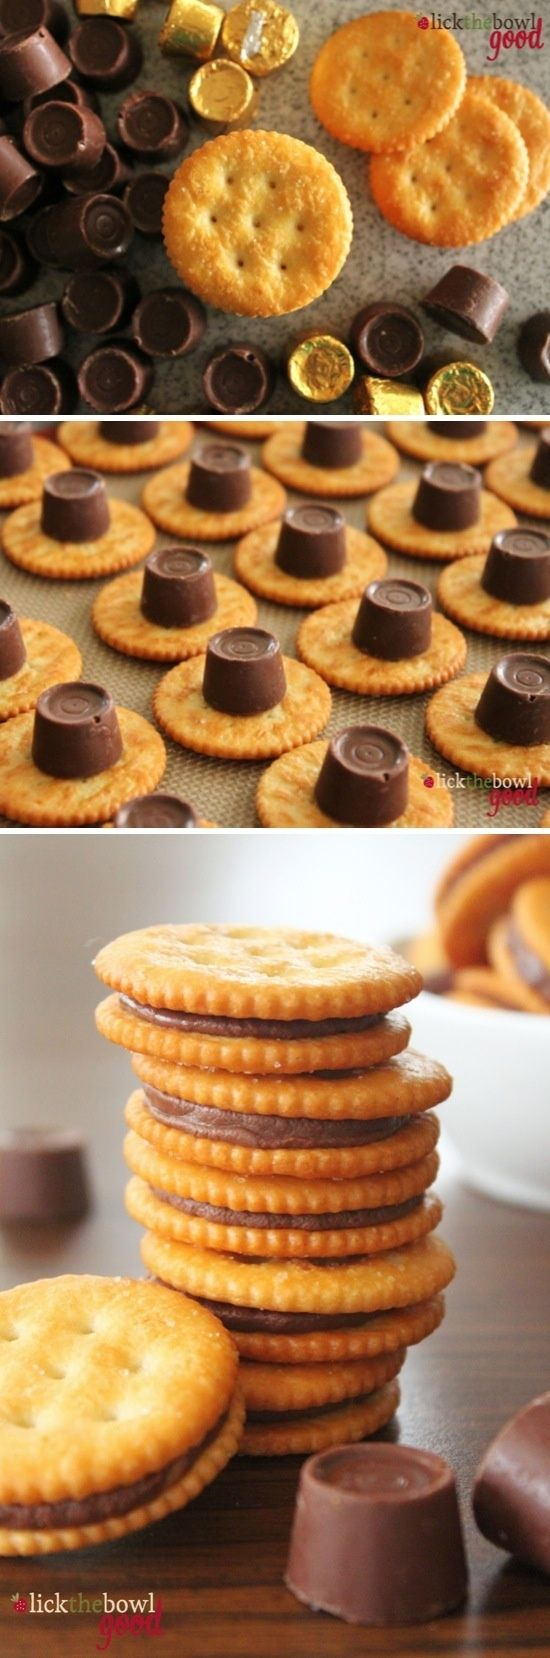 Place 1 Rolo in between 2 Ritz Crackers making a sandwhich cookie. Turn oven to 375 degrees and bake for 7 min. Watch carefully and let cool for 5 minutes. Easy, fun and delicious!